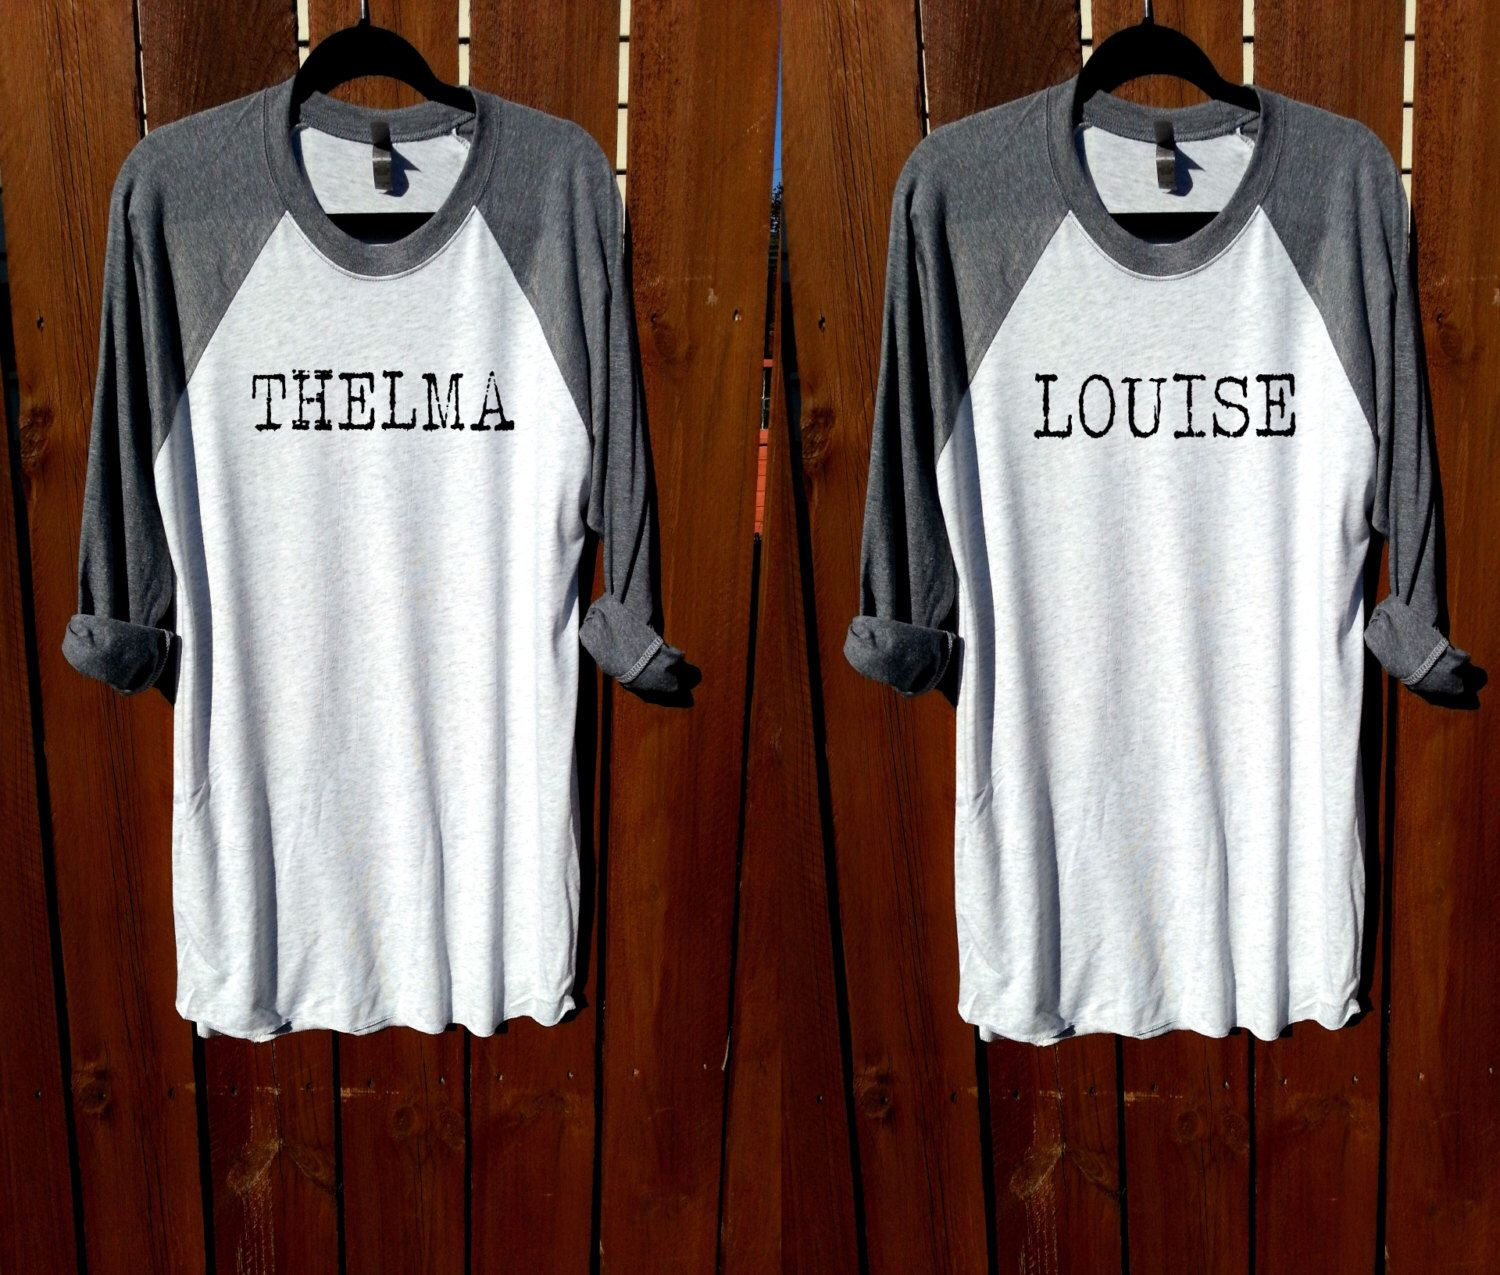 Thelma and Louise shirt, women tee,unisex tee, shirt,women clothing,tee, grey shirt, fashion shirt, workout t shirt, women t shirt by FashionCrazyGirl on Etsy https://www.etsy.com/listing/457828636/thelma-and-louise-shirt-women-teeunisex